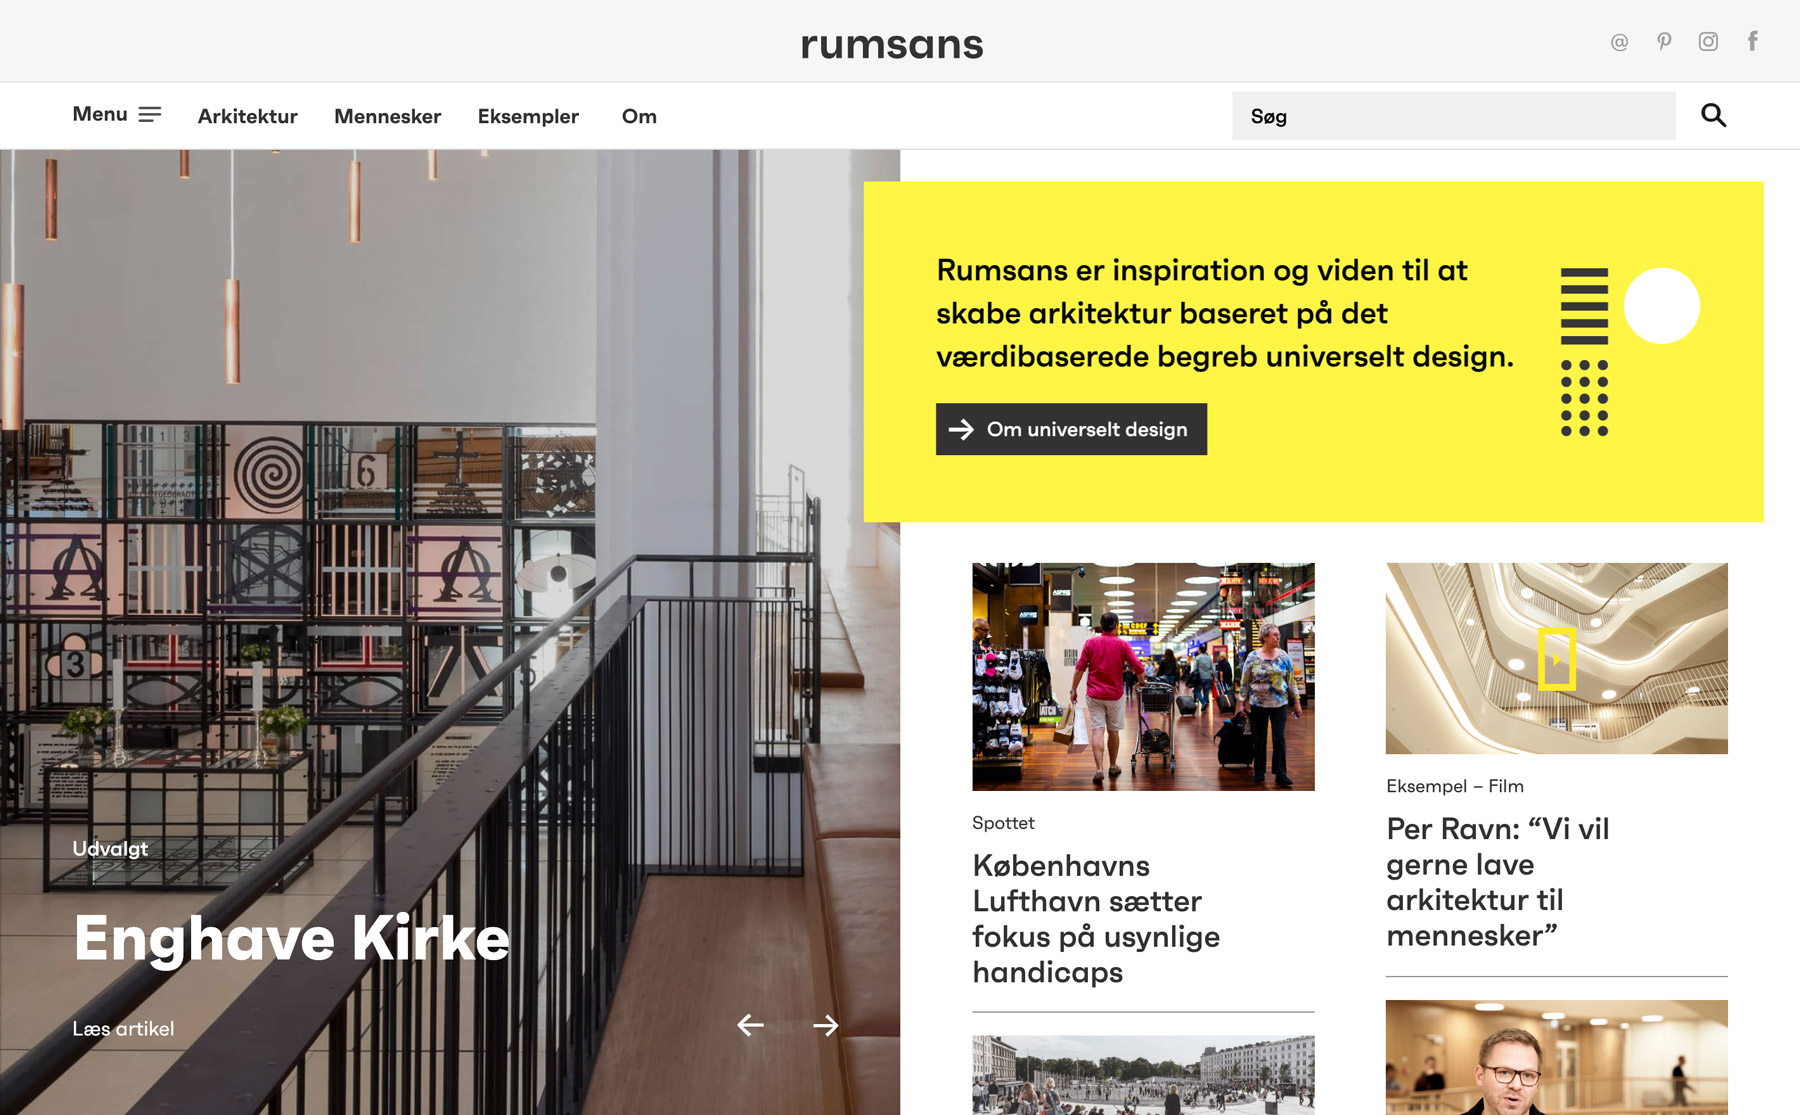 The frontpage of the Rumsans website with navigation menu, pictures and editorial content.